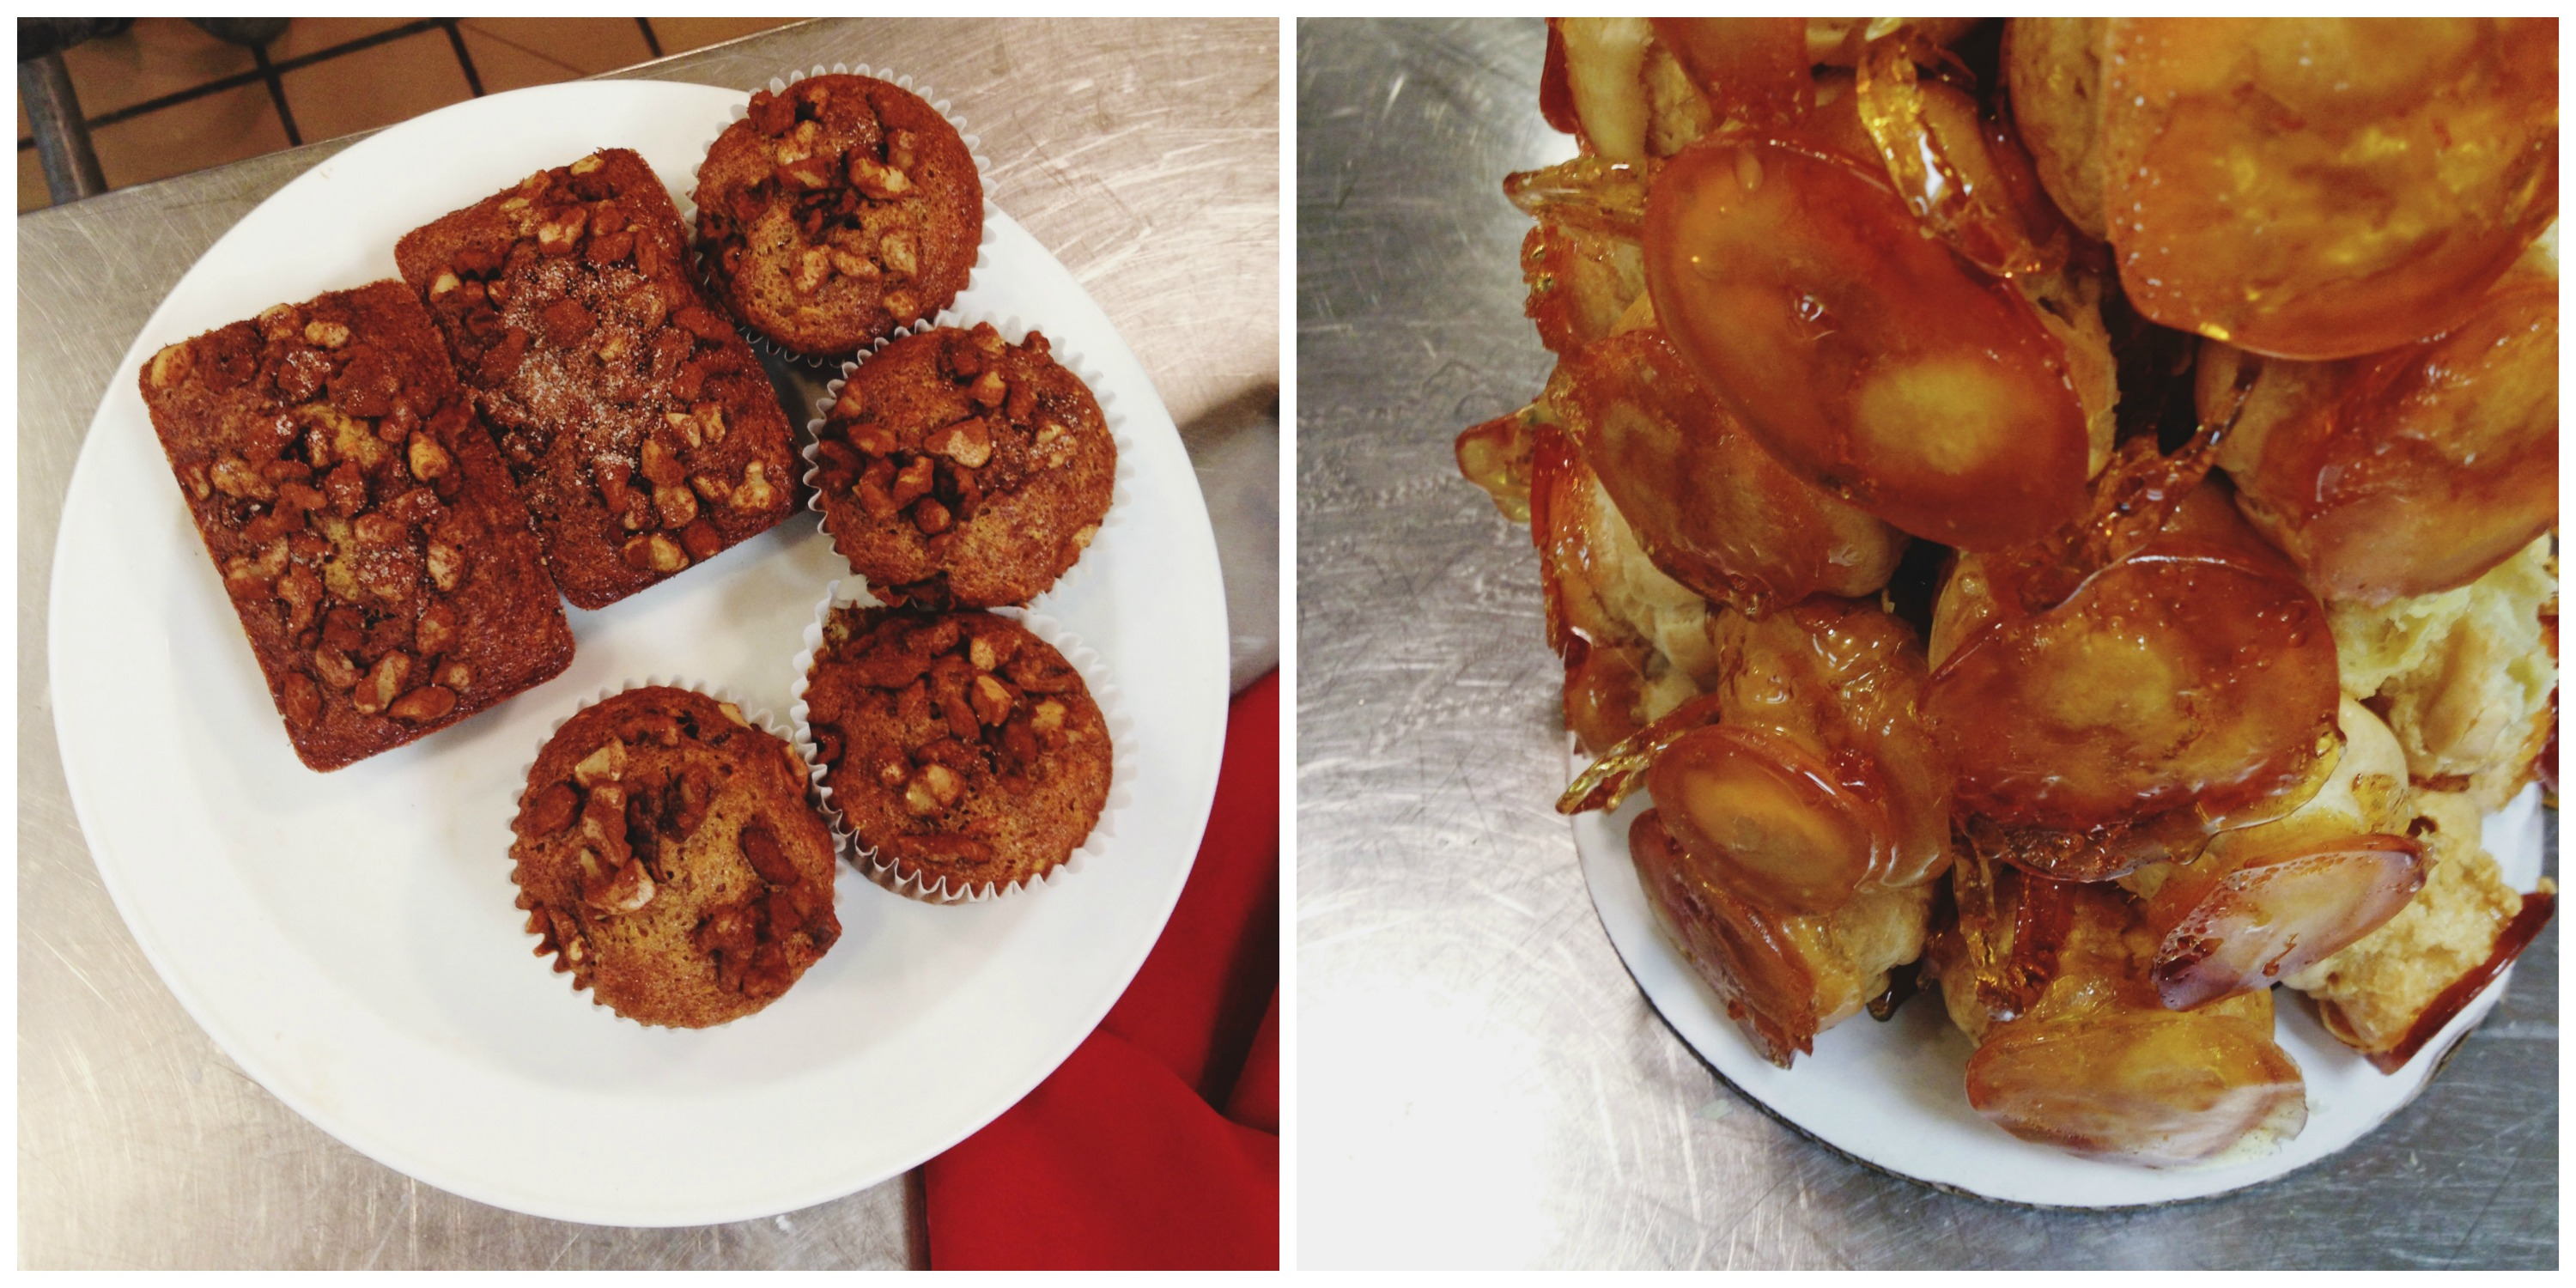 Croquembouche + Muffins and Quick Breads